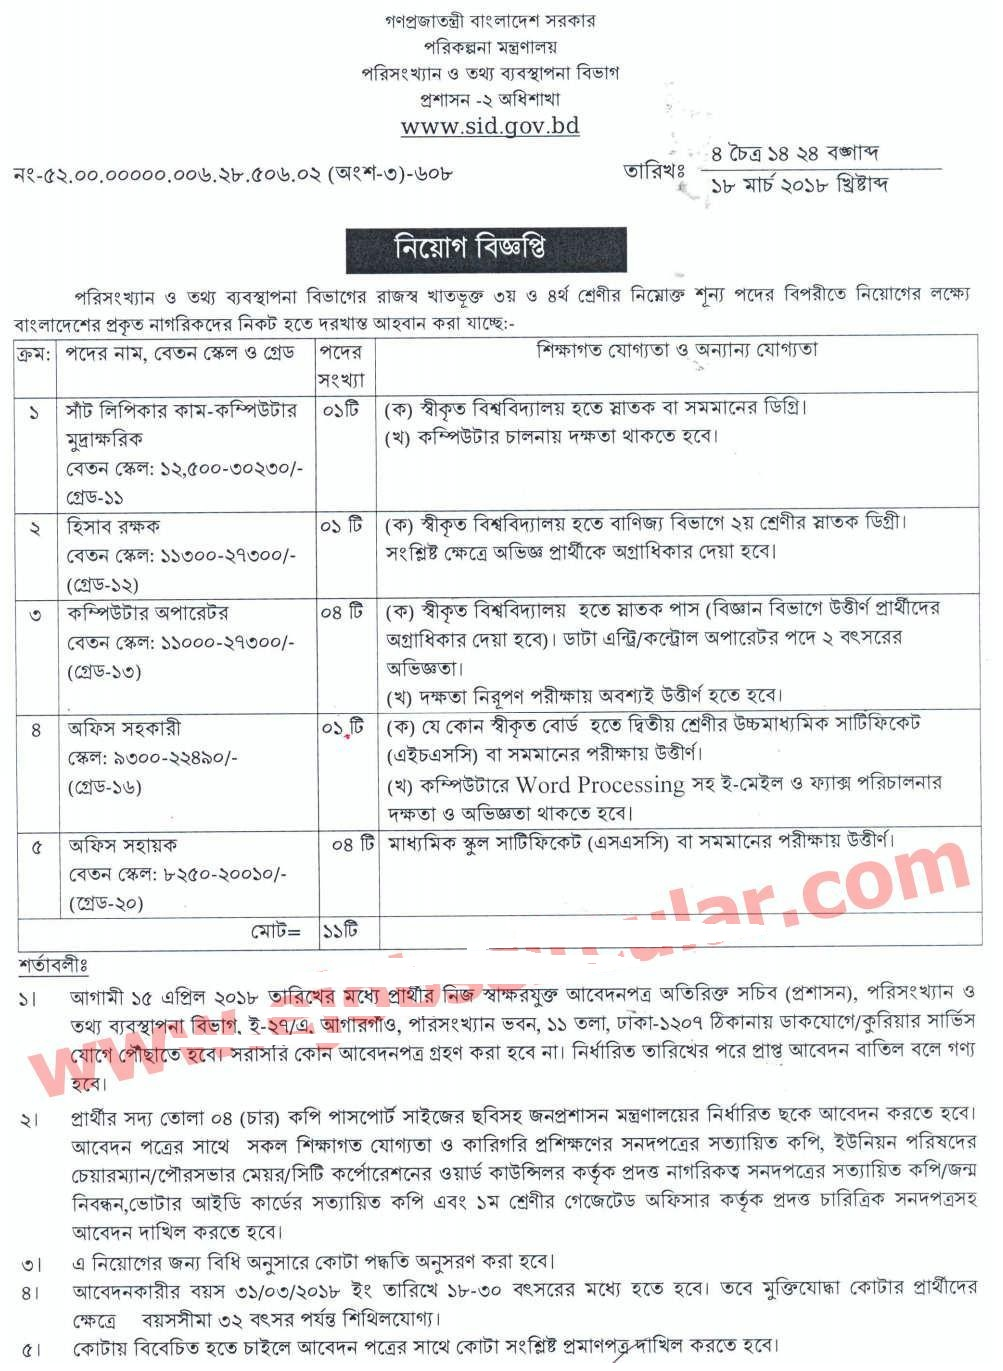 Statistics and Informatics Division (SID) Government Job Circular 2018